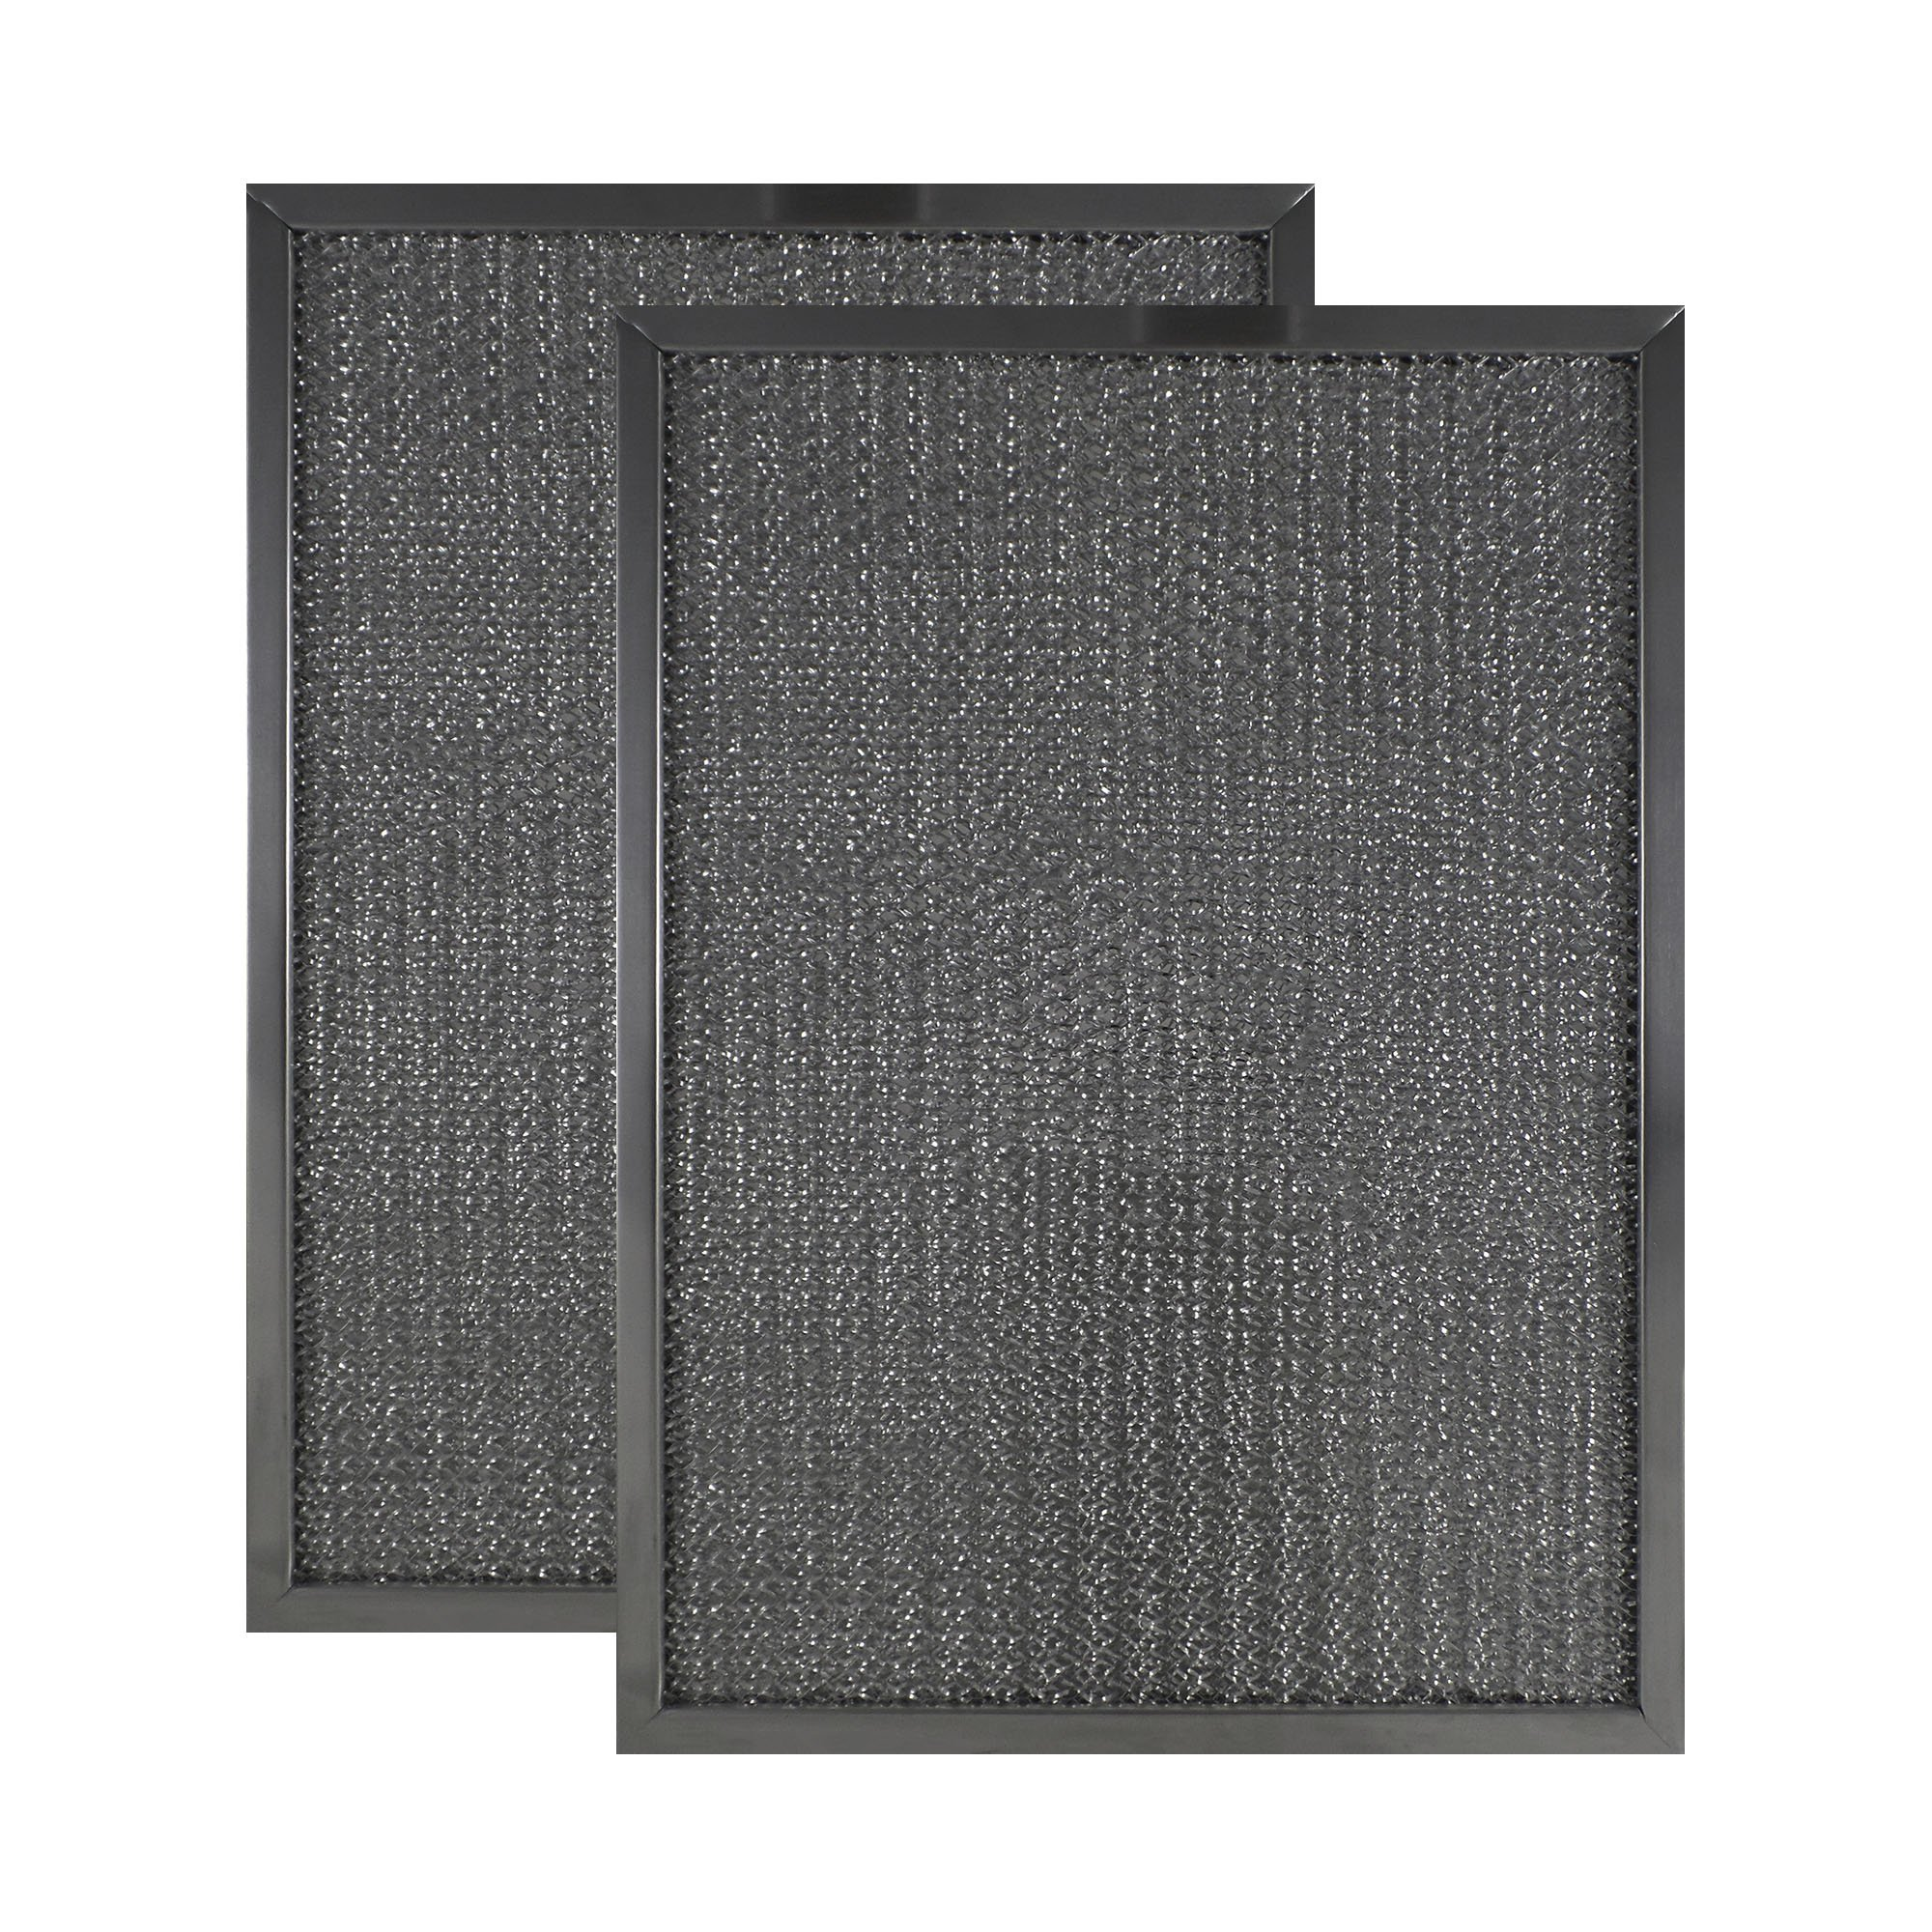 2-PACK Air Filter Factory 10 X 13-1/2 X 3/8 Range Hood Aluminum Grease Filters AFF146-M by Air Filter Factory